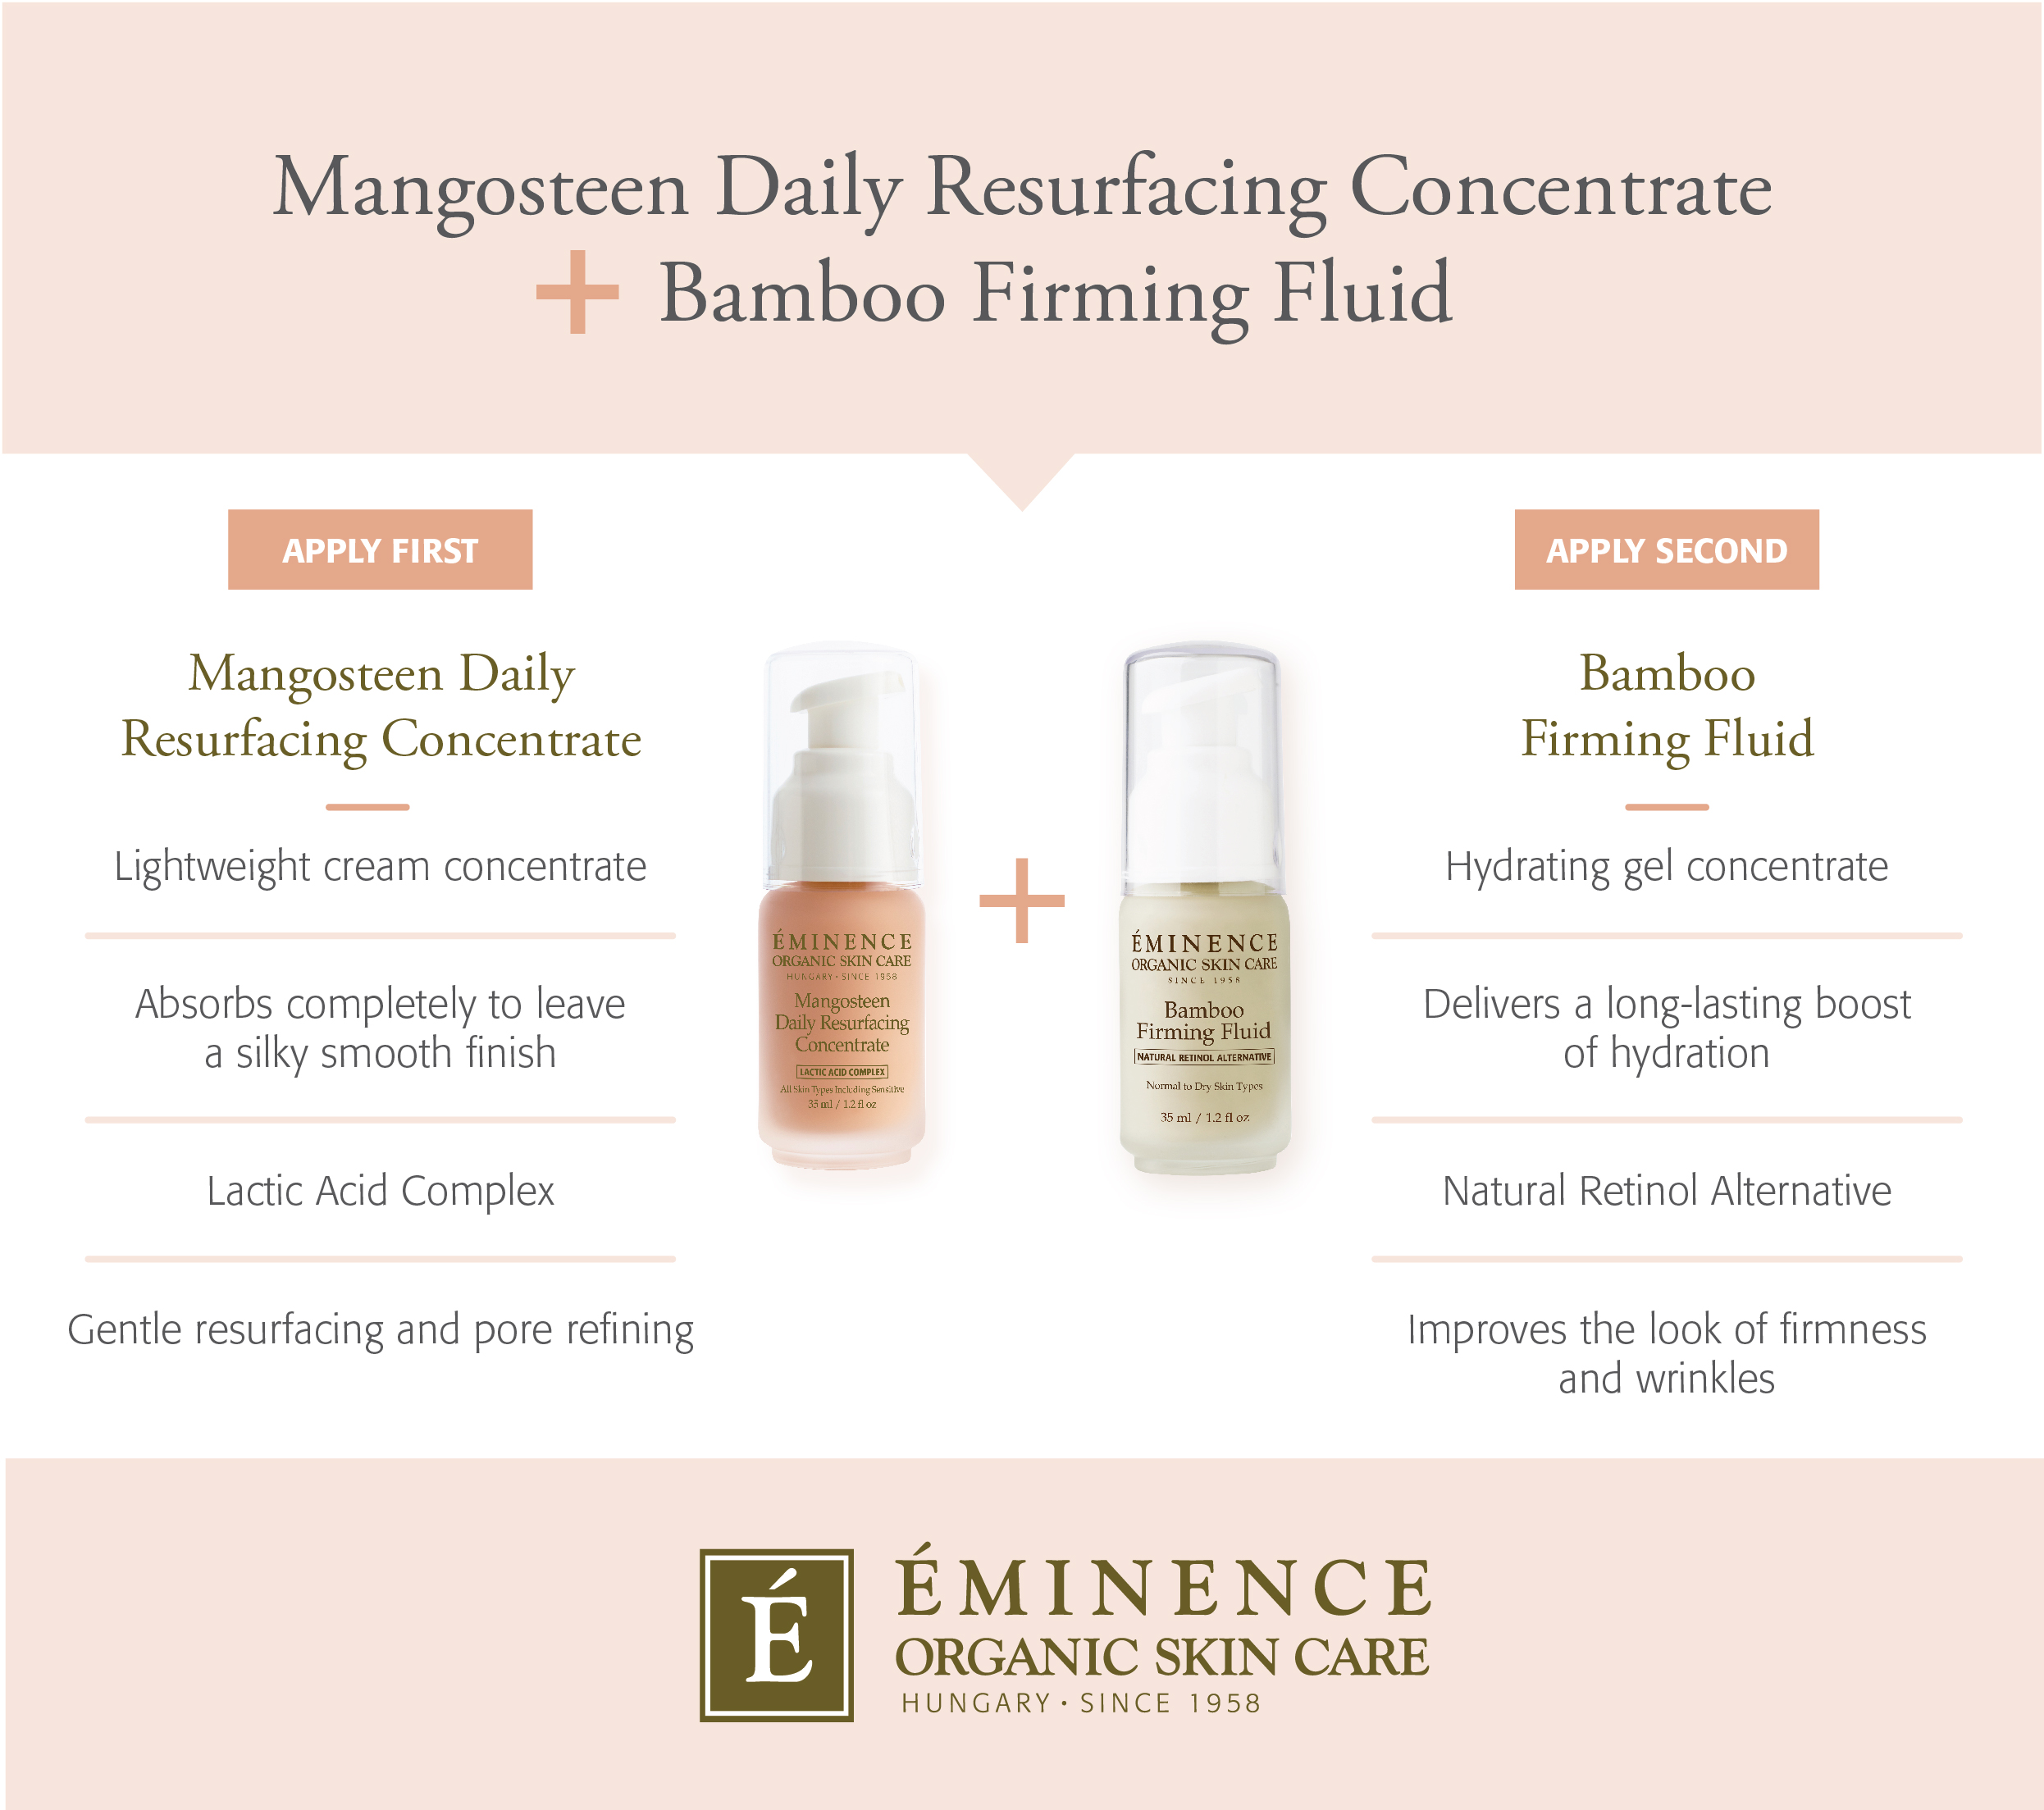 Eminence Organics pairing: Mangosteen Daily Resurfacing Concentrate & Bamboo Firming Fluid